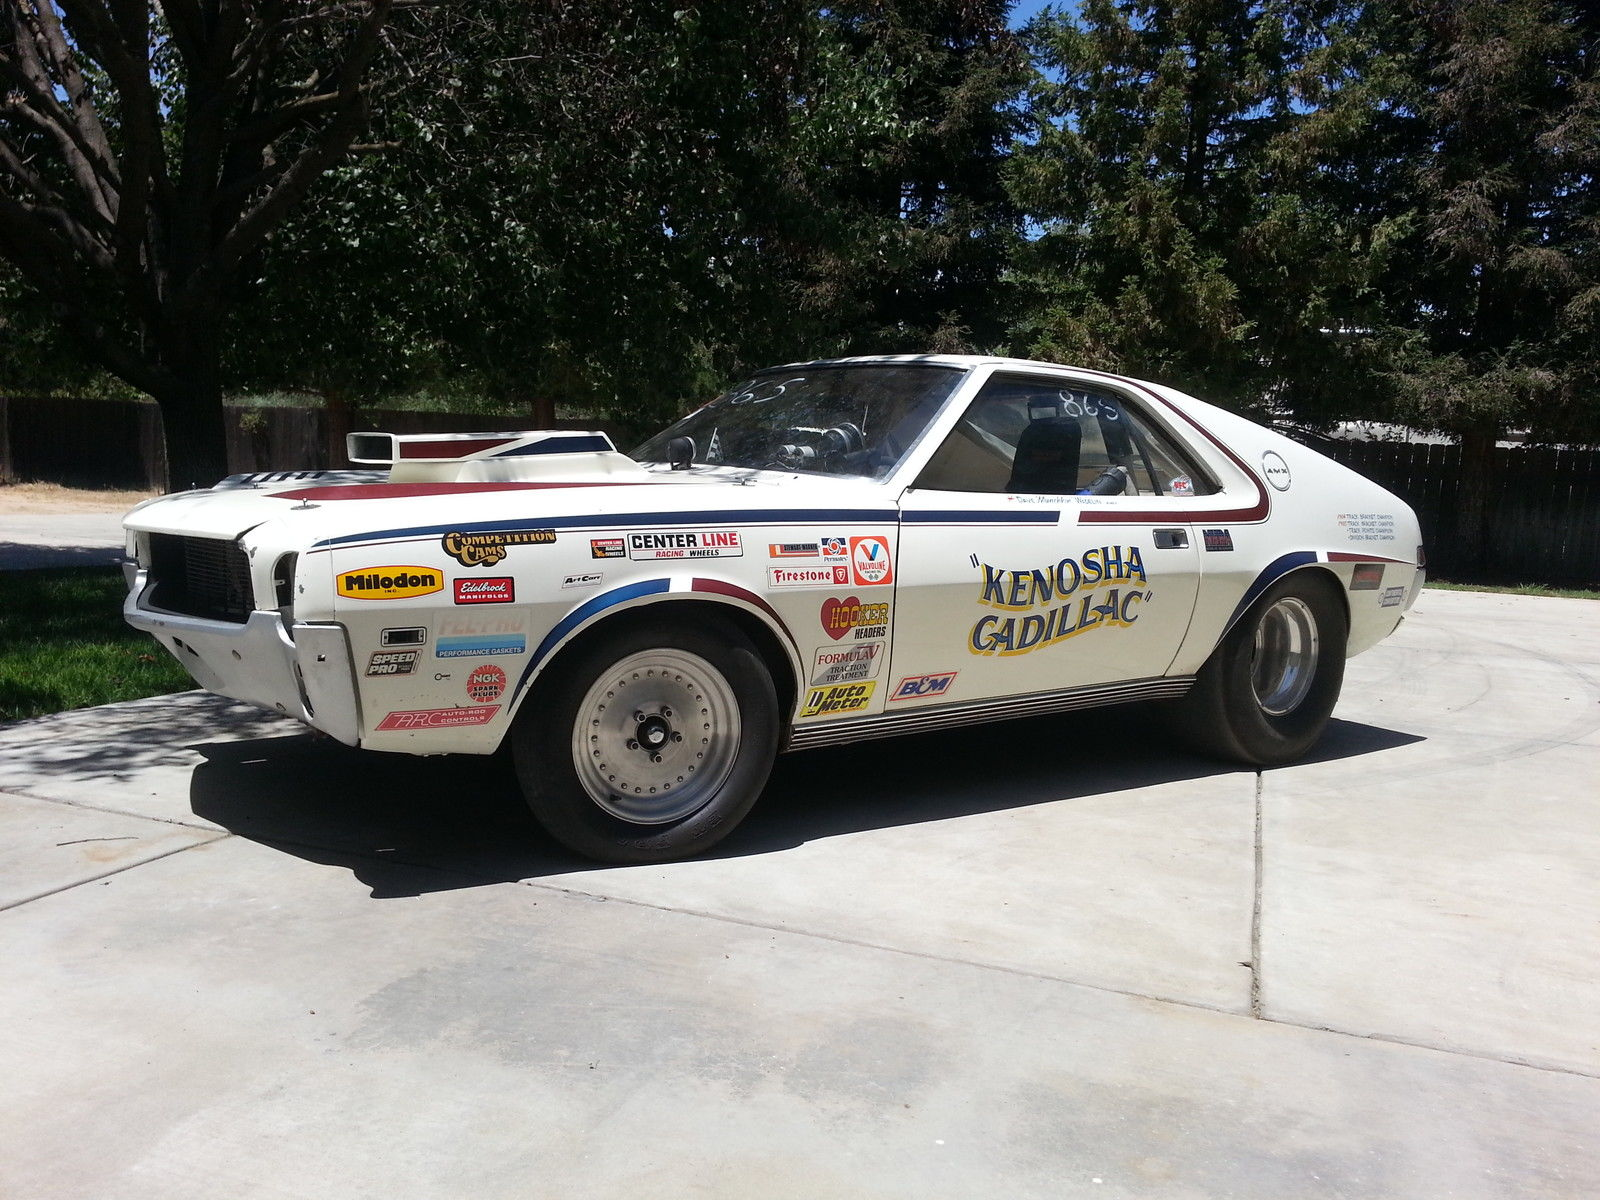 1968 Amc Amx Drag Racer Put Up For Sale On Ebay Could Be